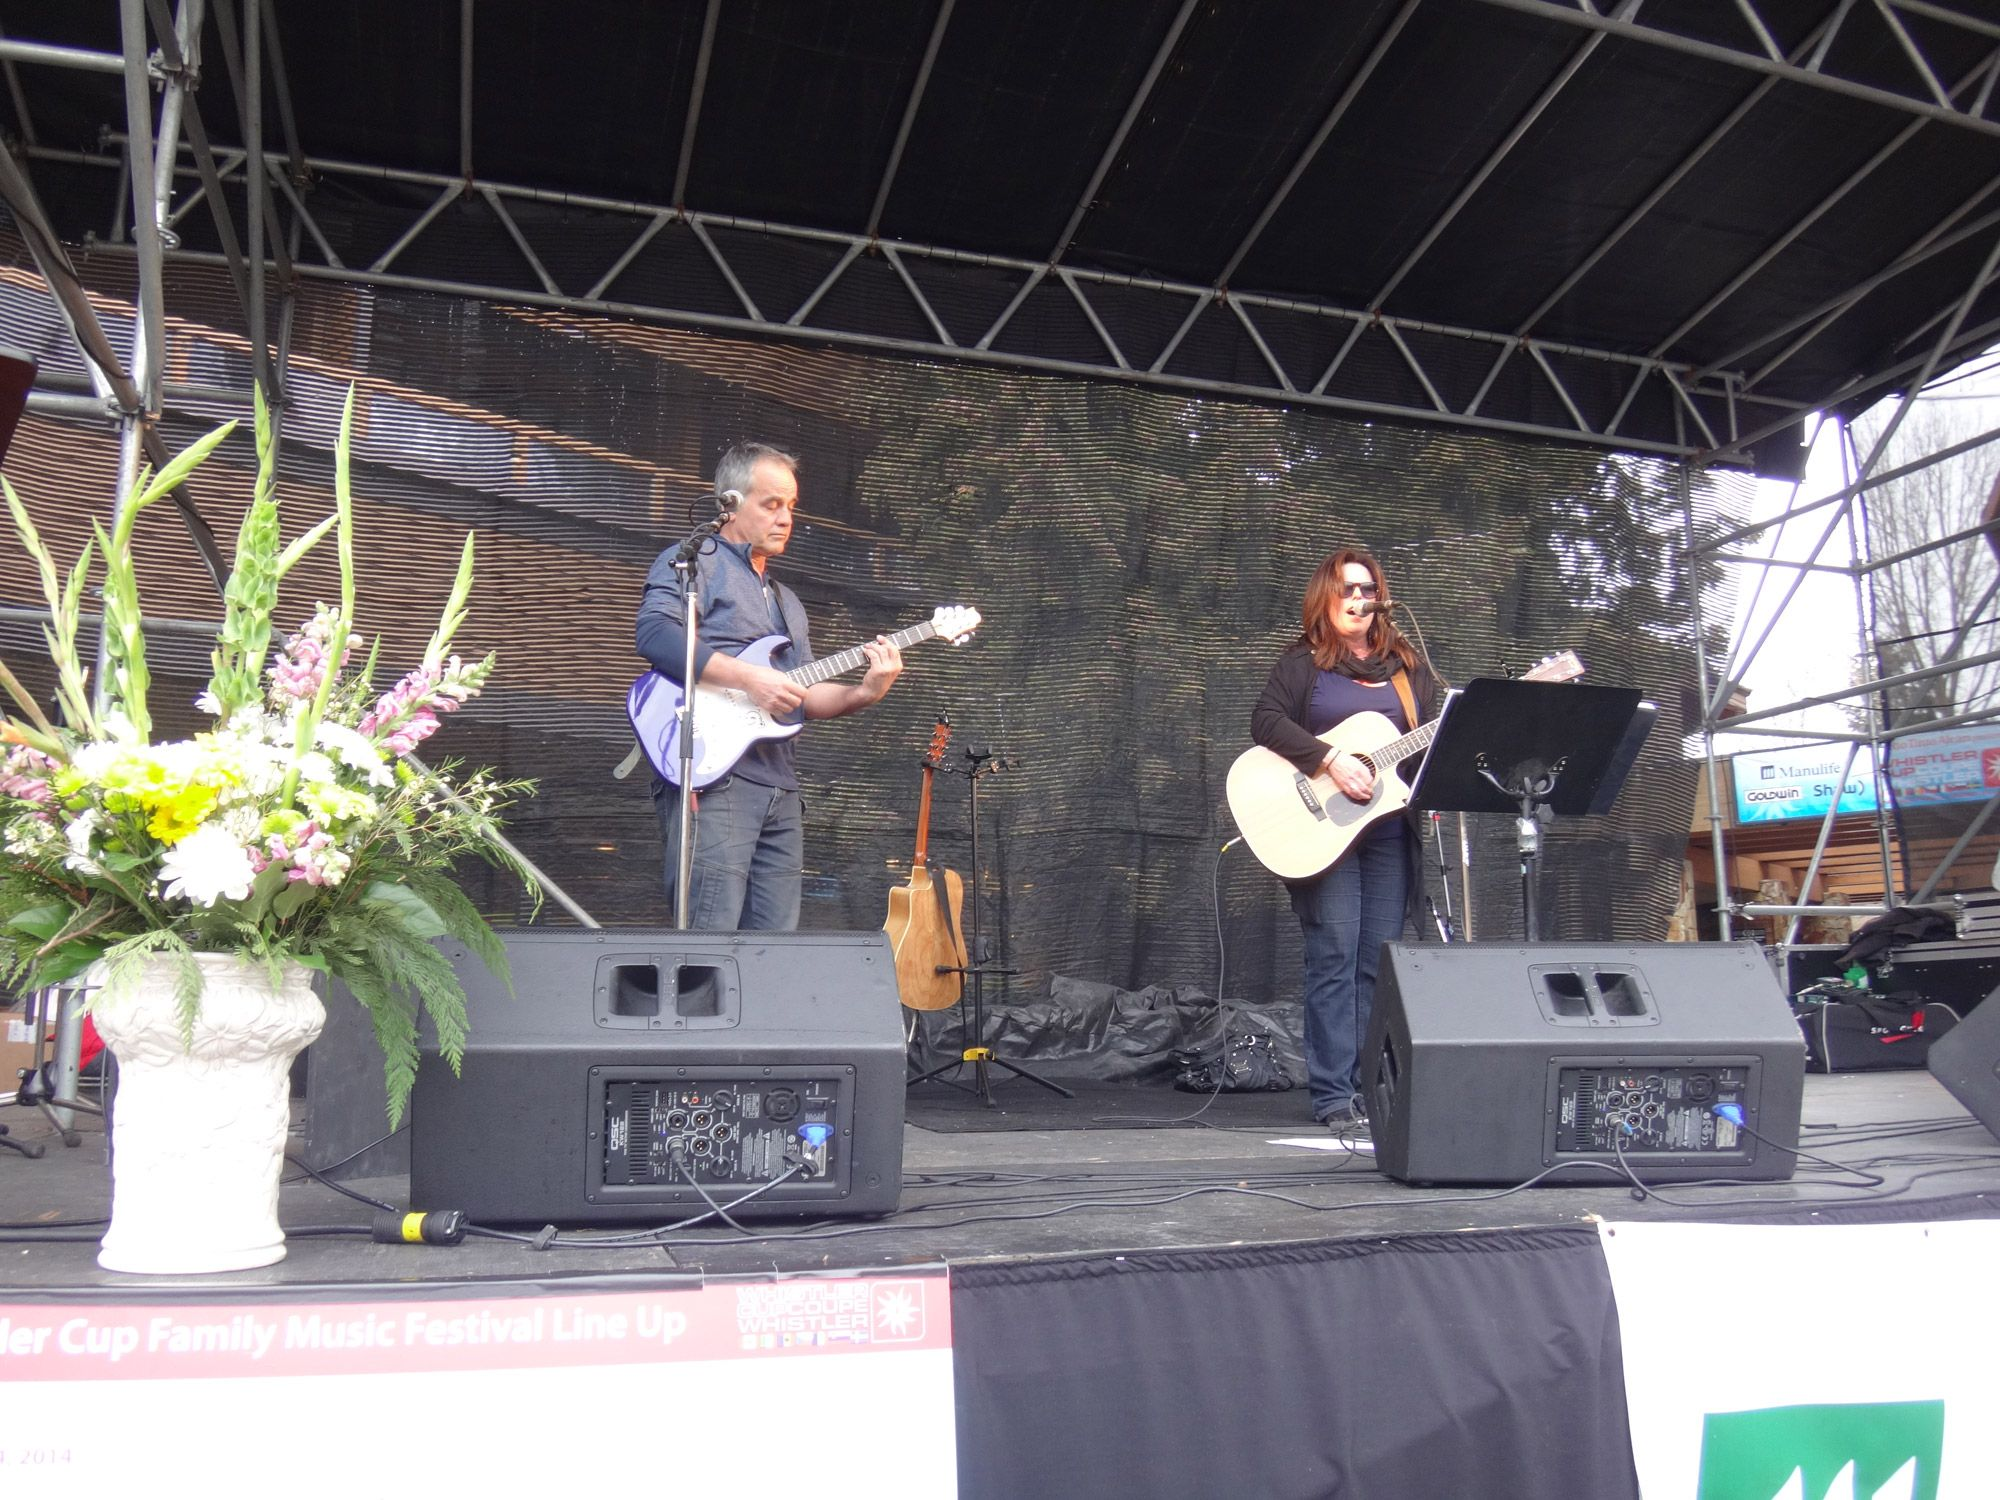 Live music in Whistler village today during the Winter season.